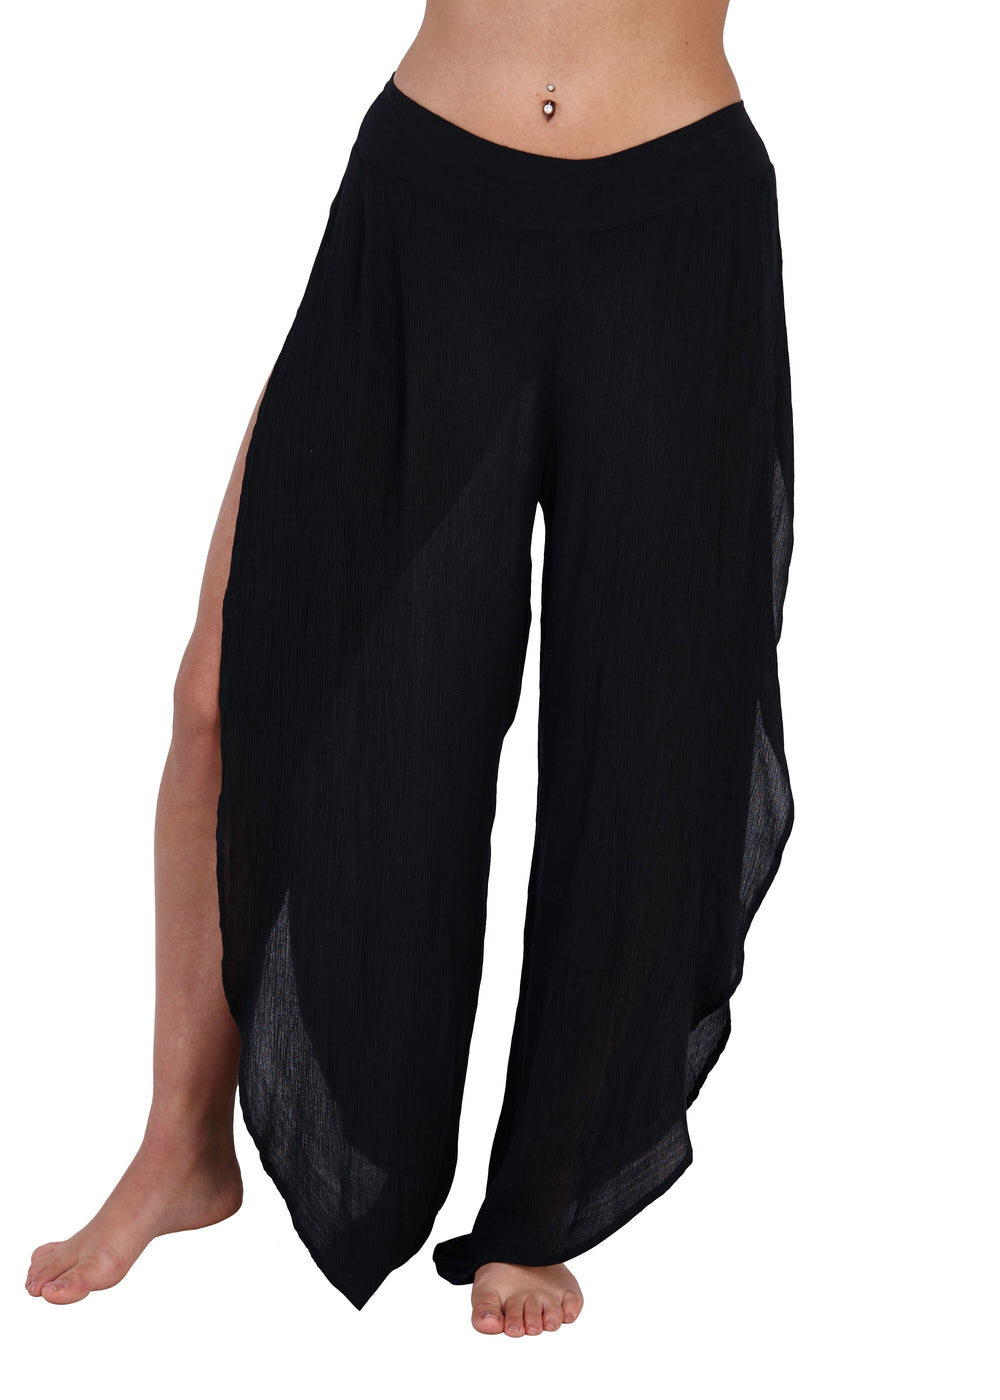 South Beach - Black Chiffon Beach Pants